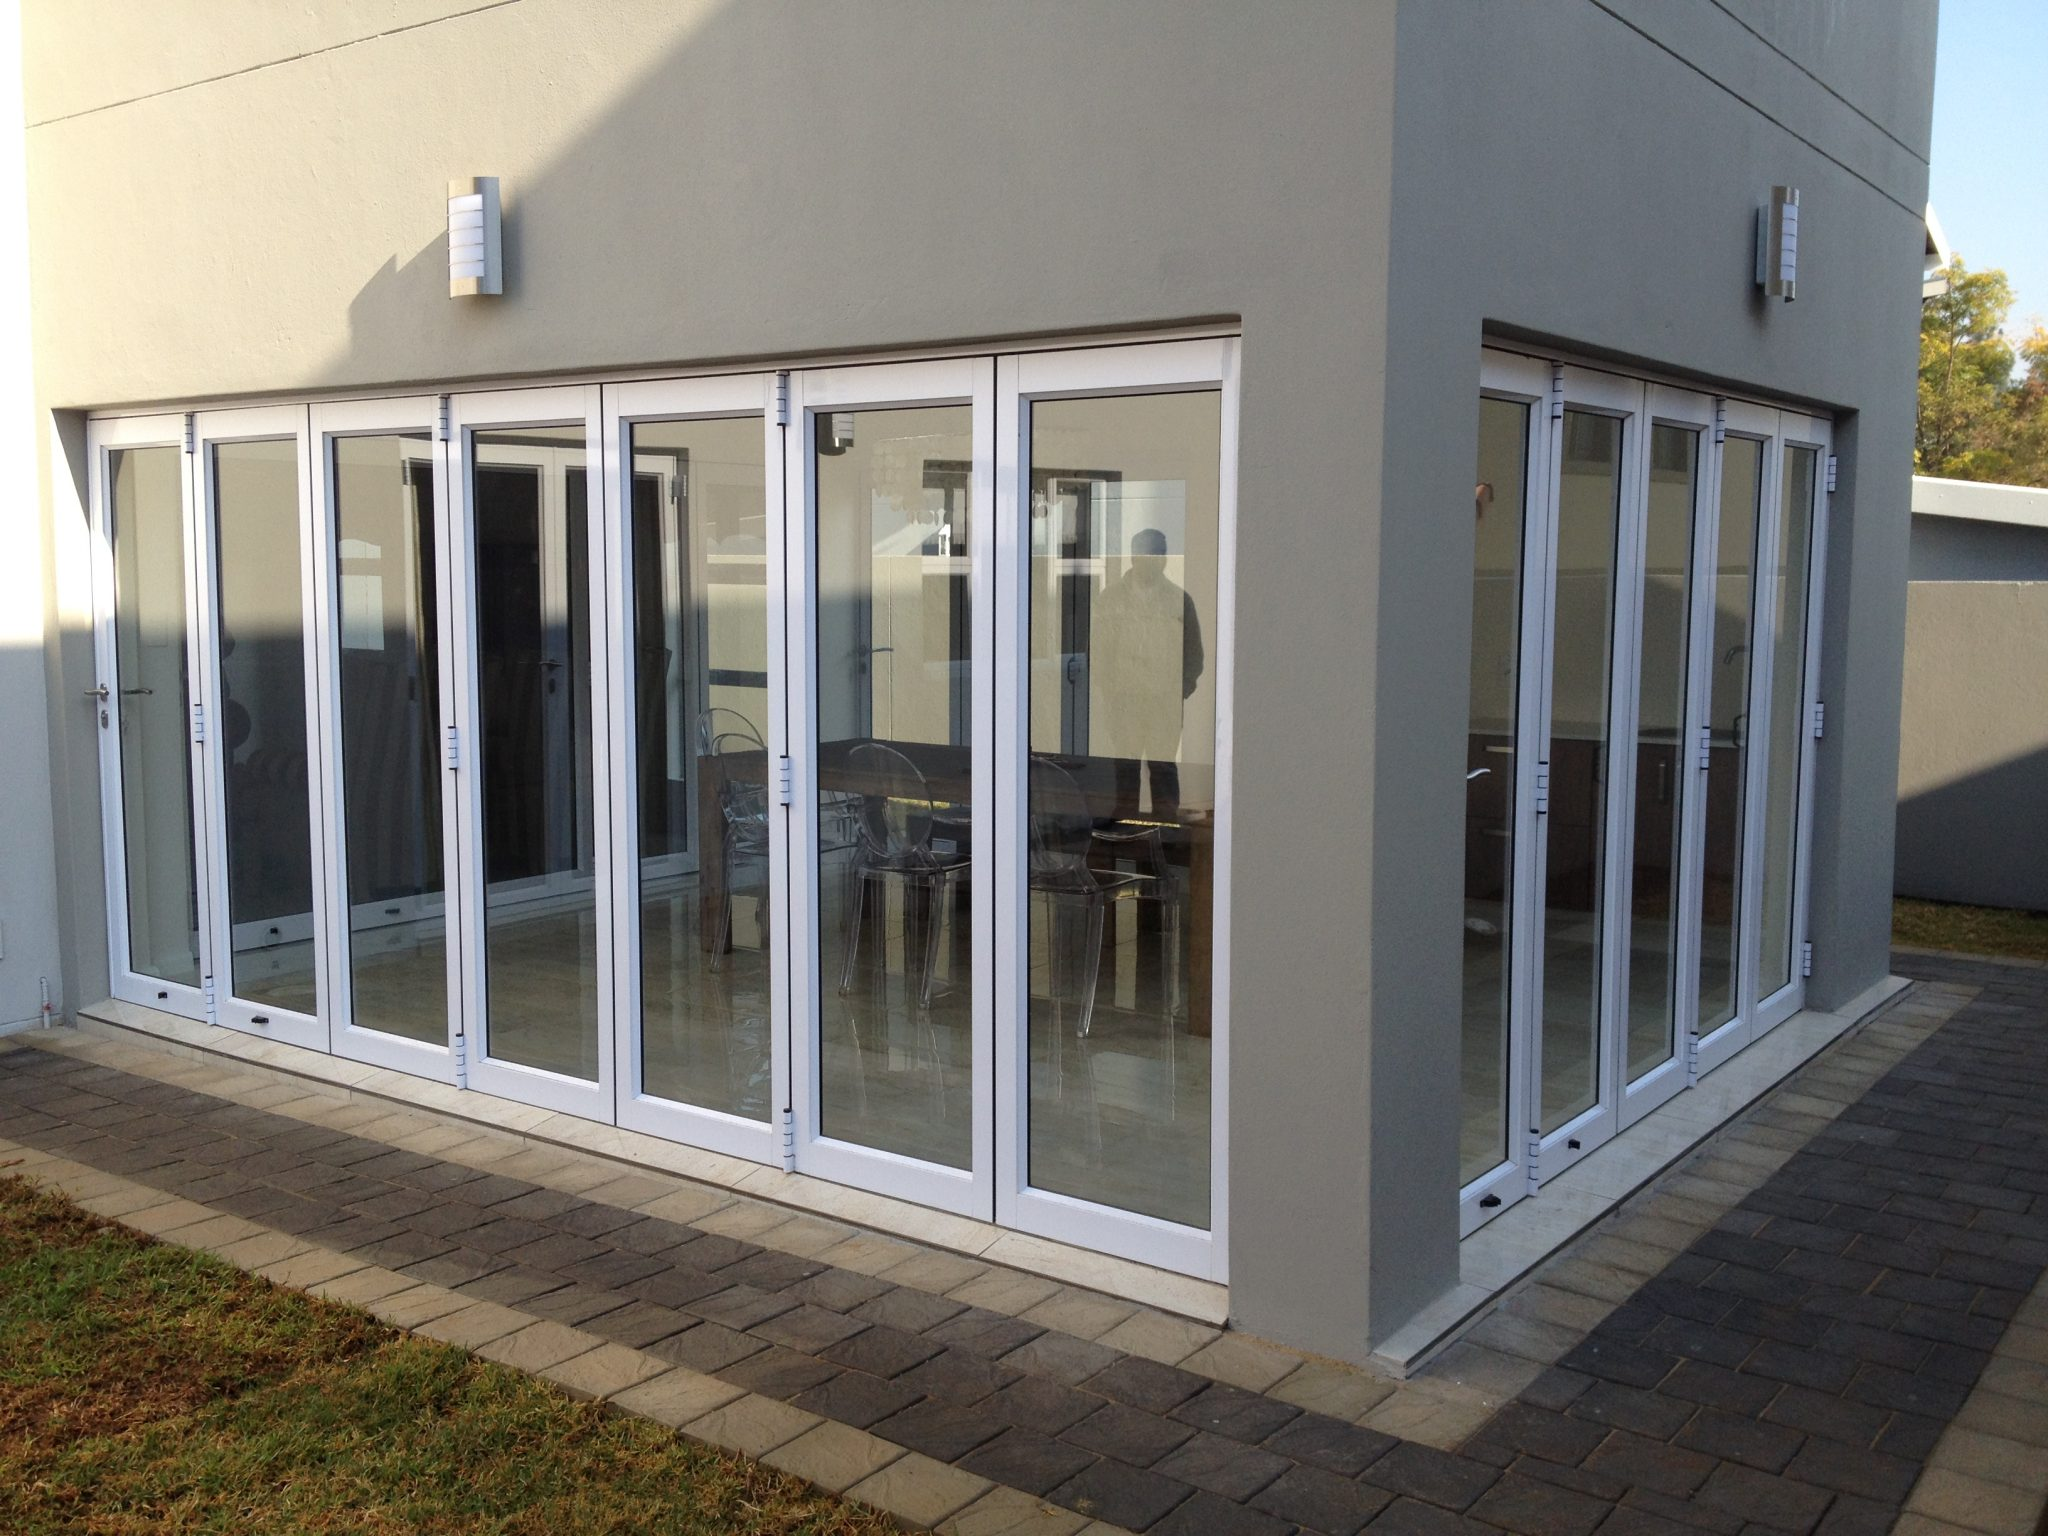 1536 #5C4B36 Top Quality Sliding/Folding Doors In Johannesburg picture/photo Best Quality Doors 39592048